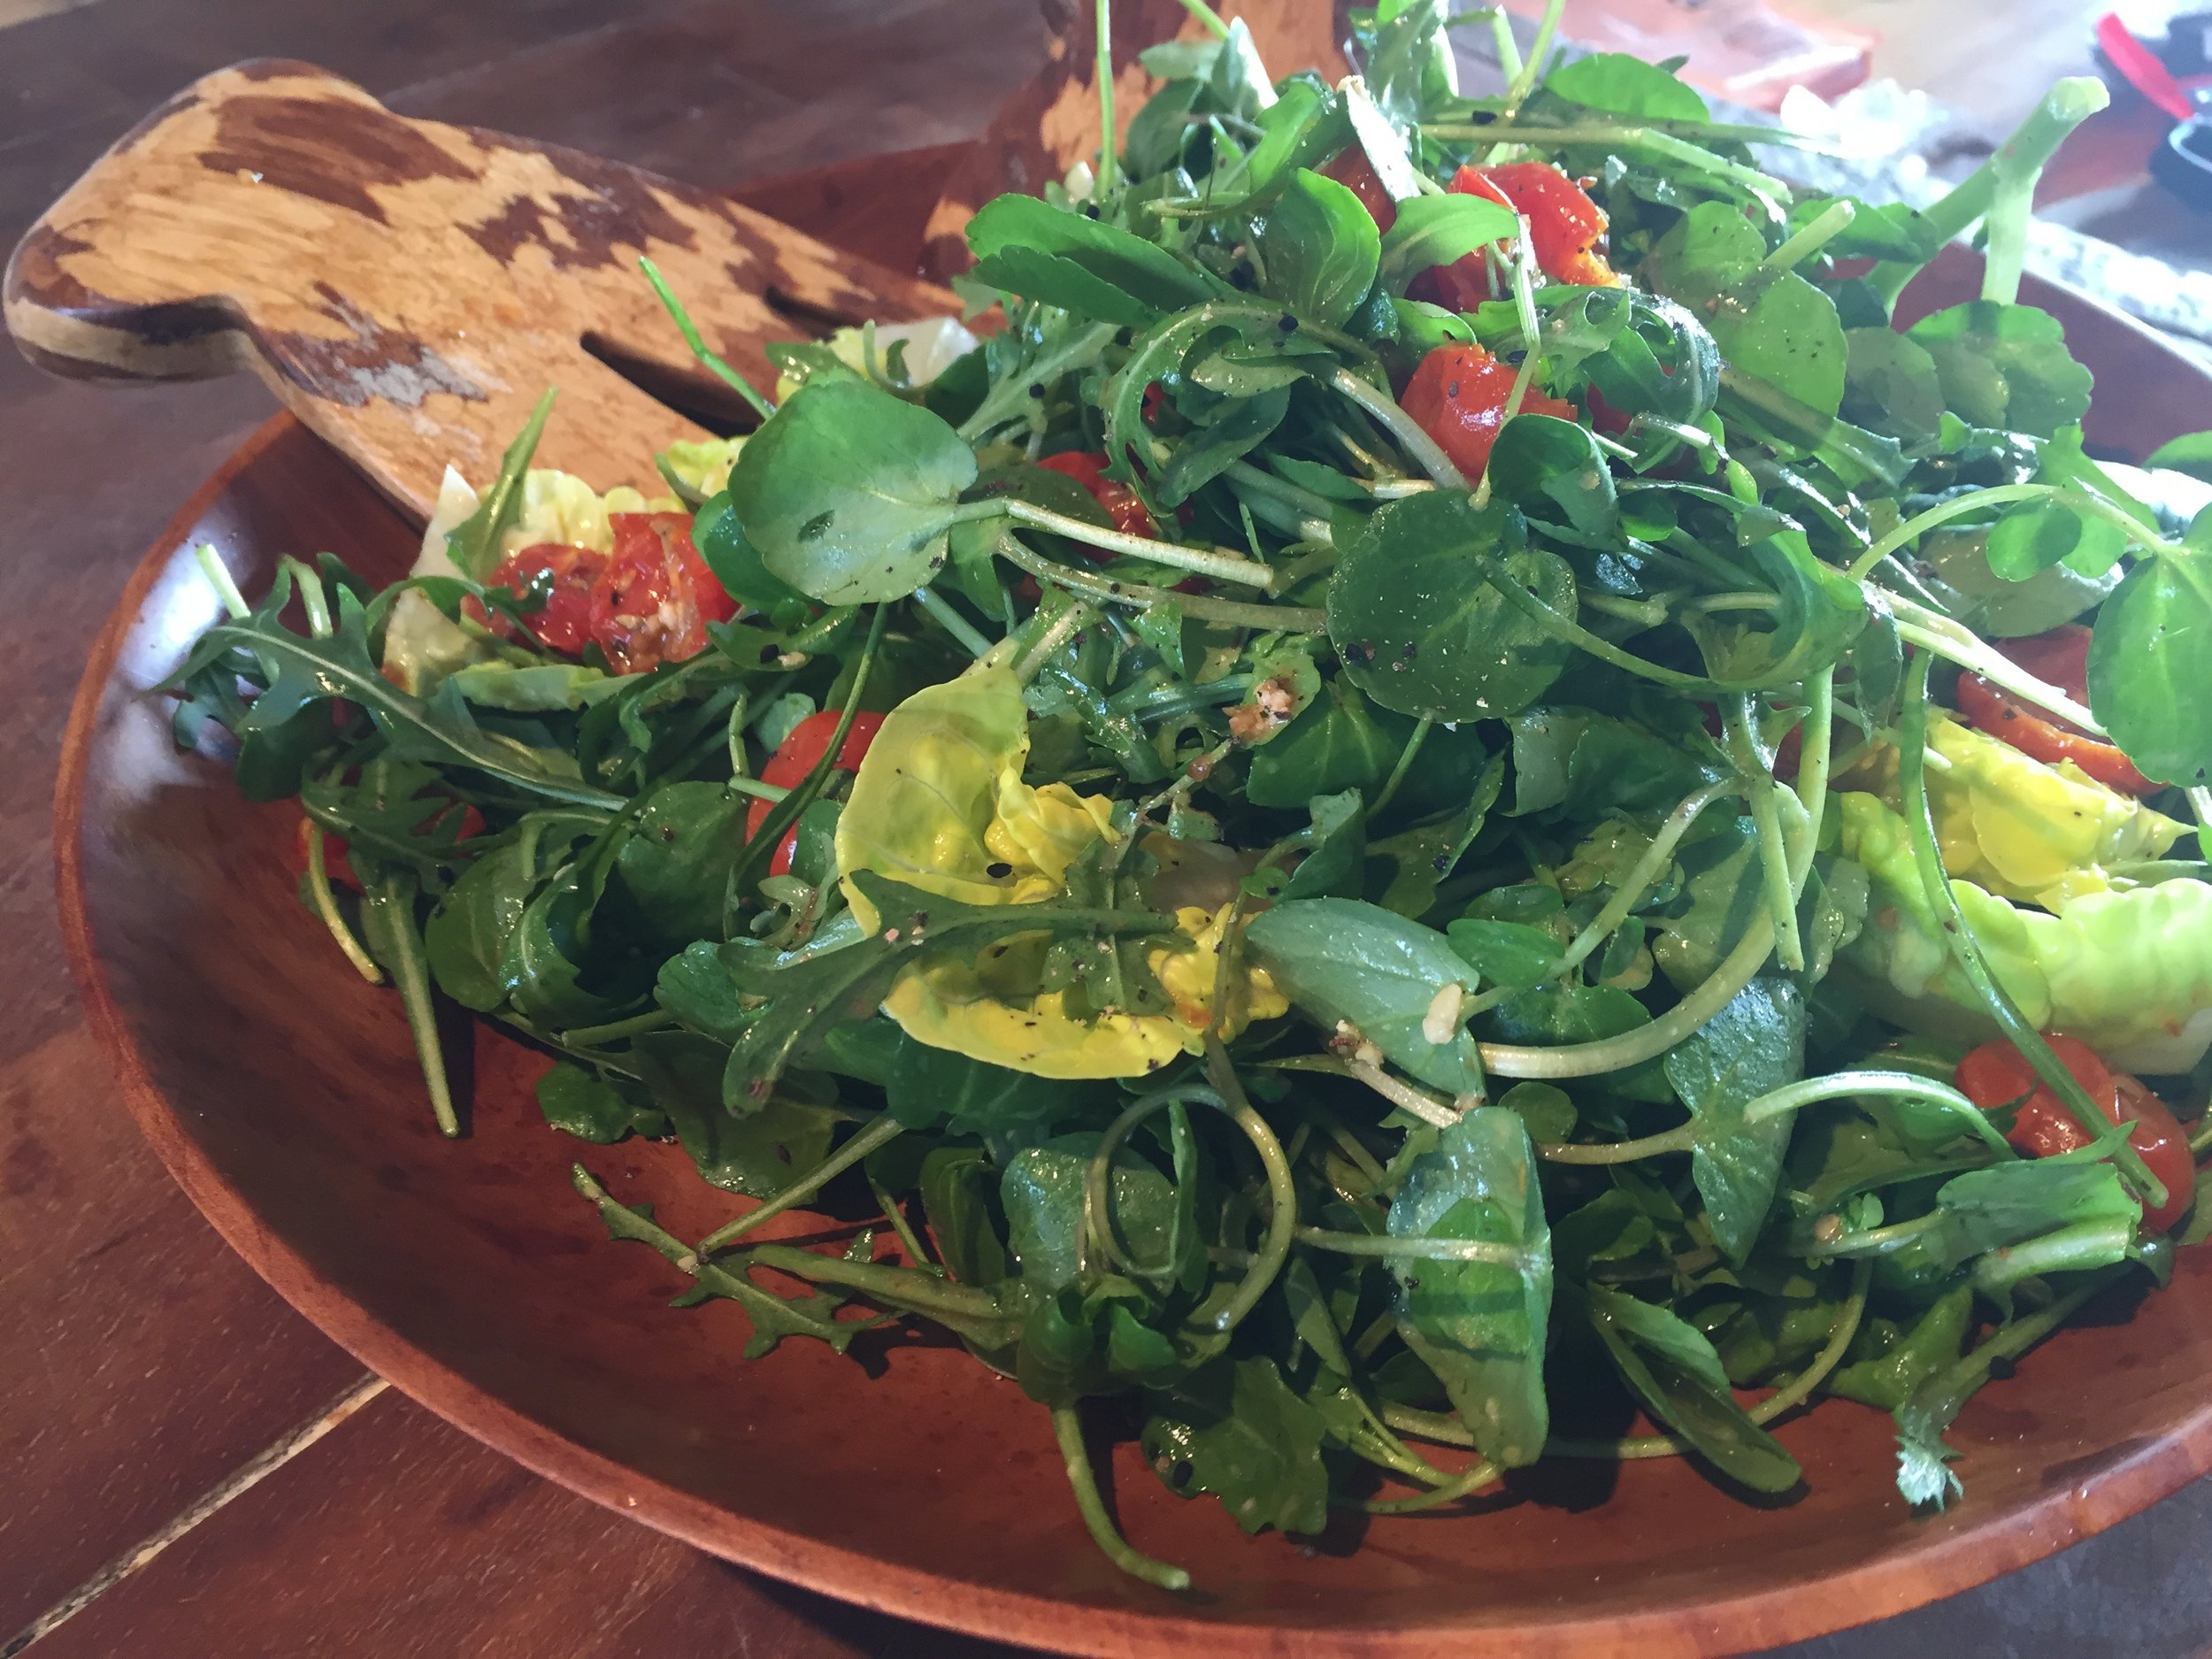 Dressed fresh salad, perfect with BBQ'd meats